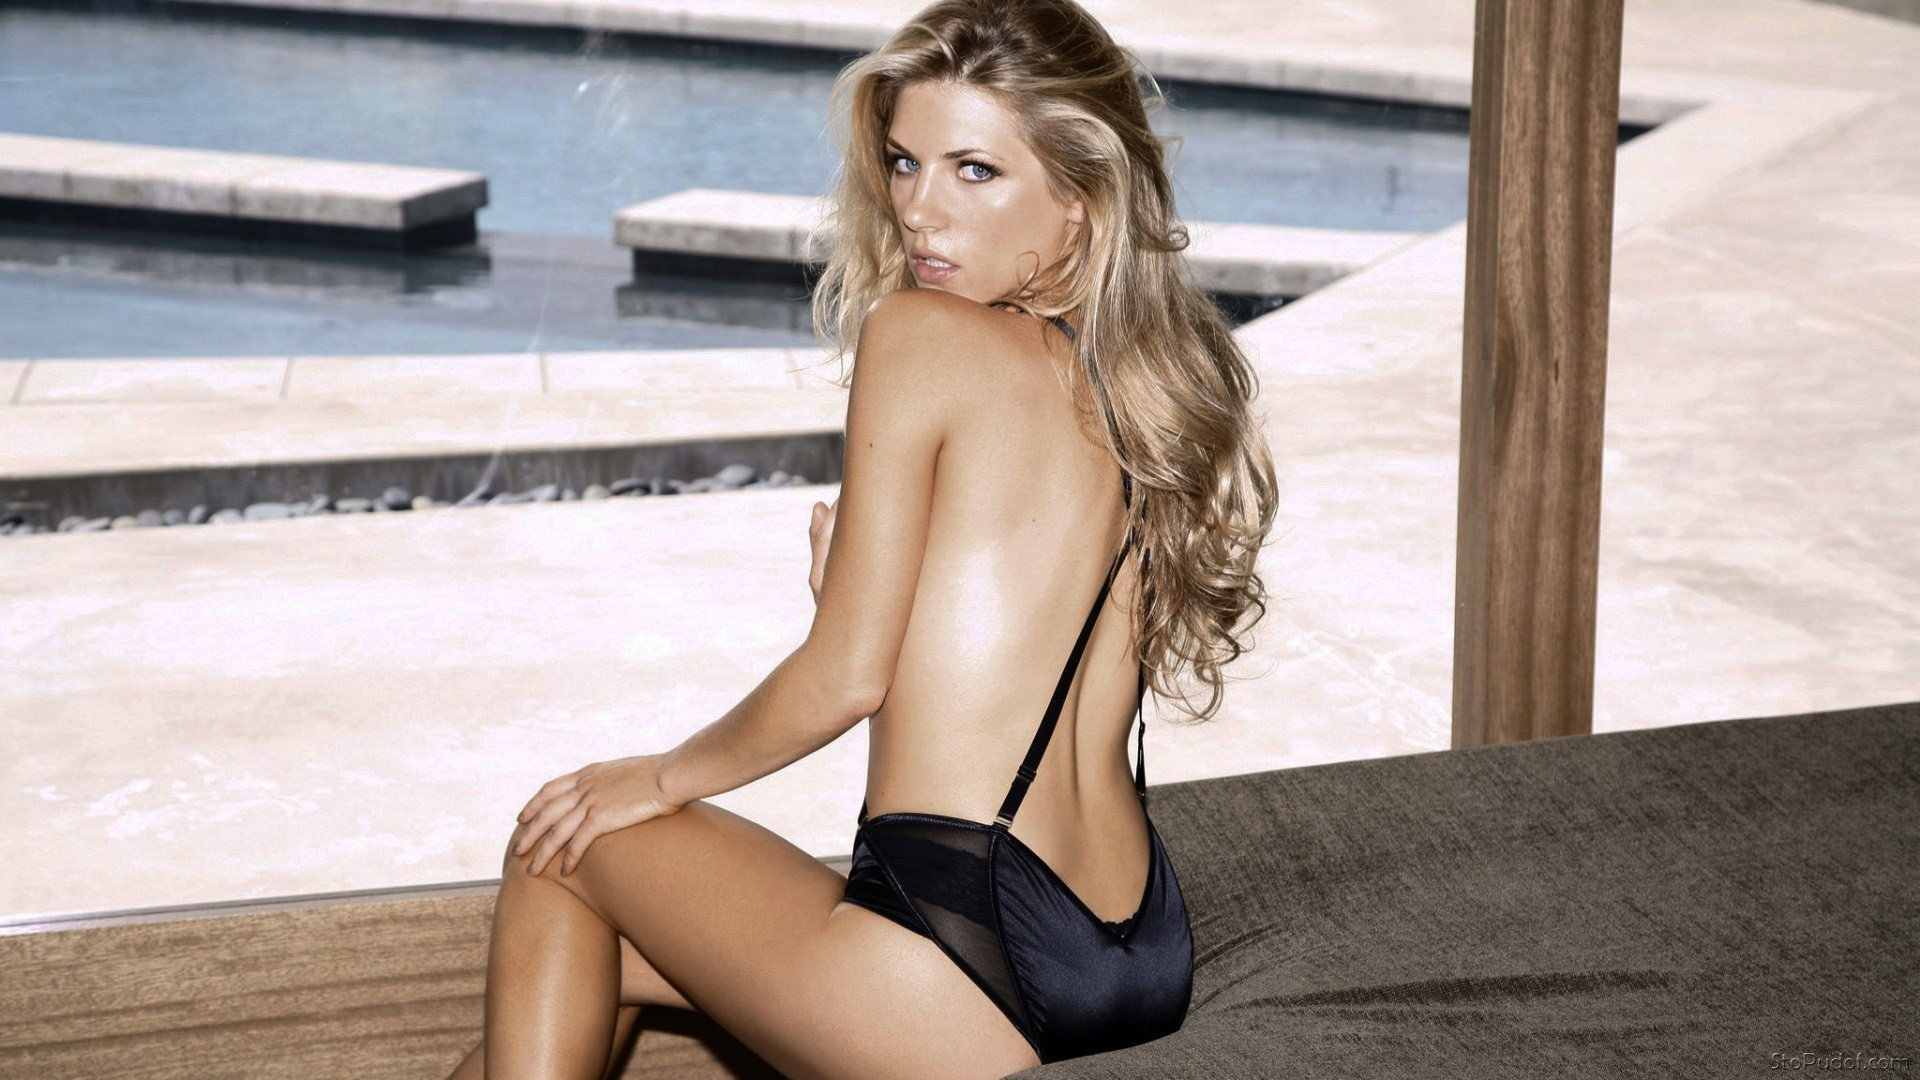 Katheryn Winnick nude photos leaked - UkPhotoSafari